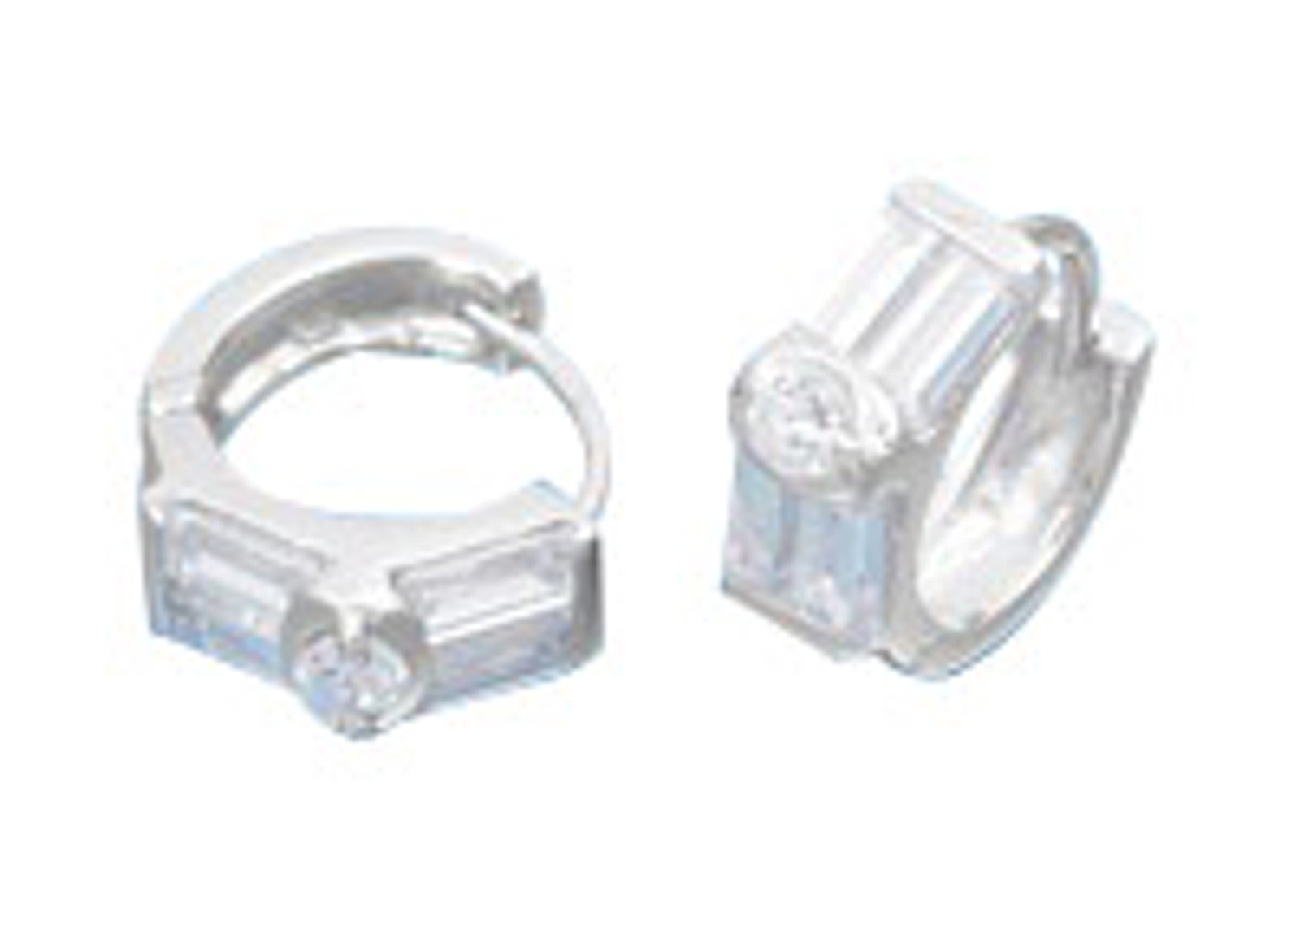 15mm Diameter Round and Baguette Style CZ Hinged Huggie Hoop Earrings